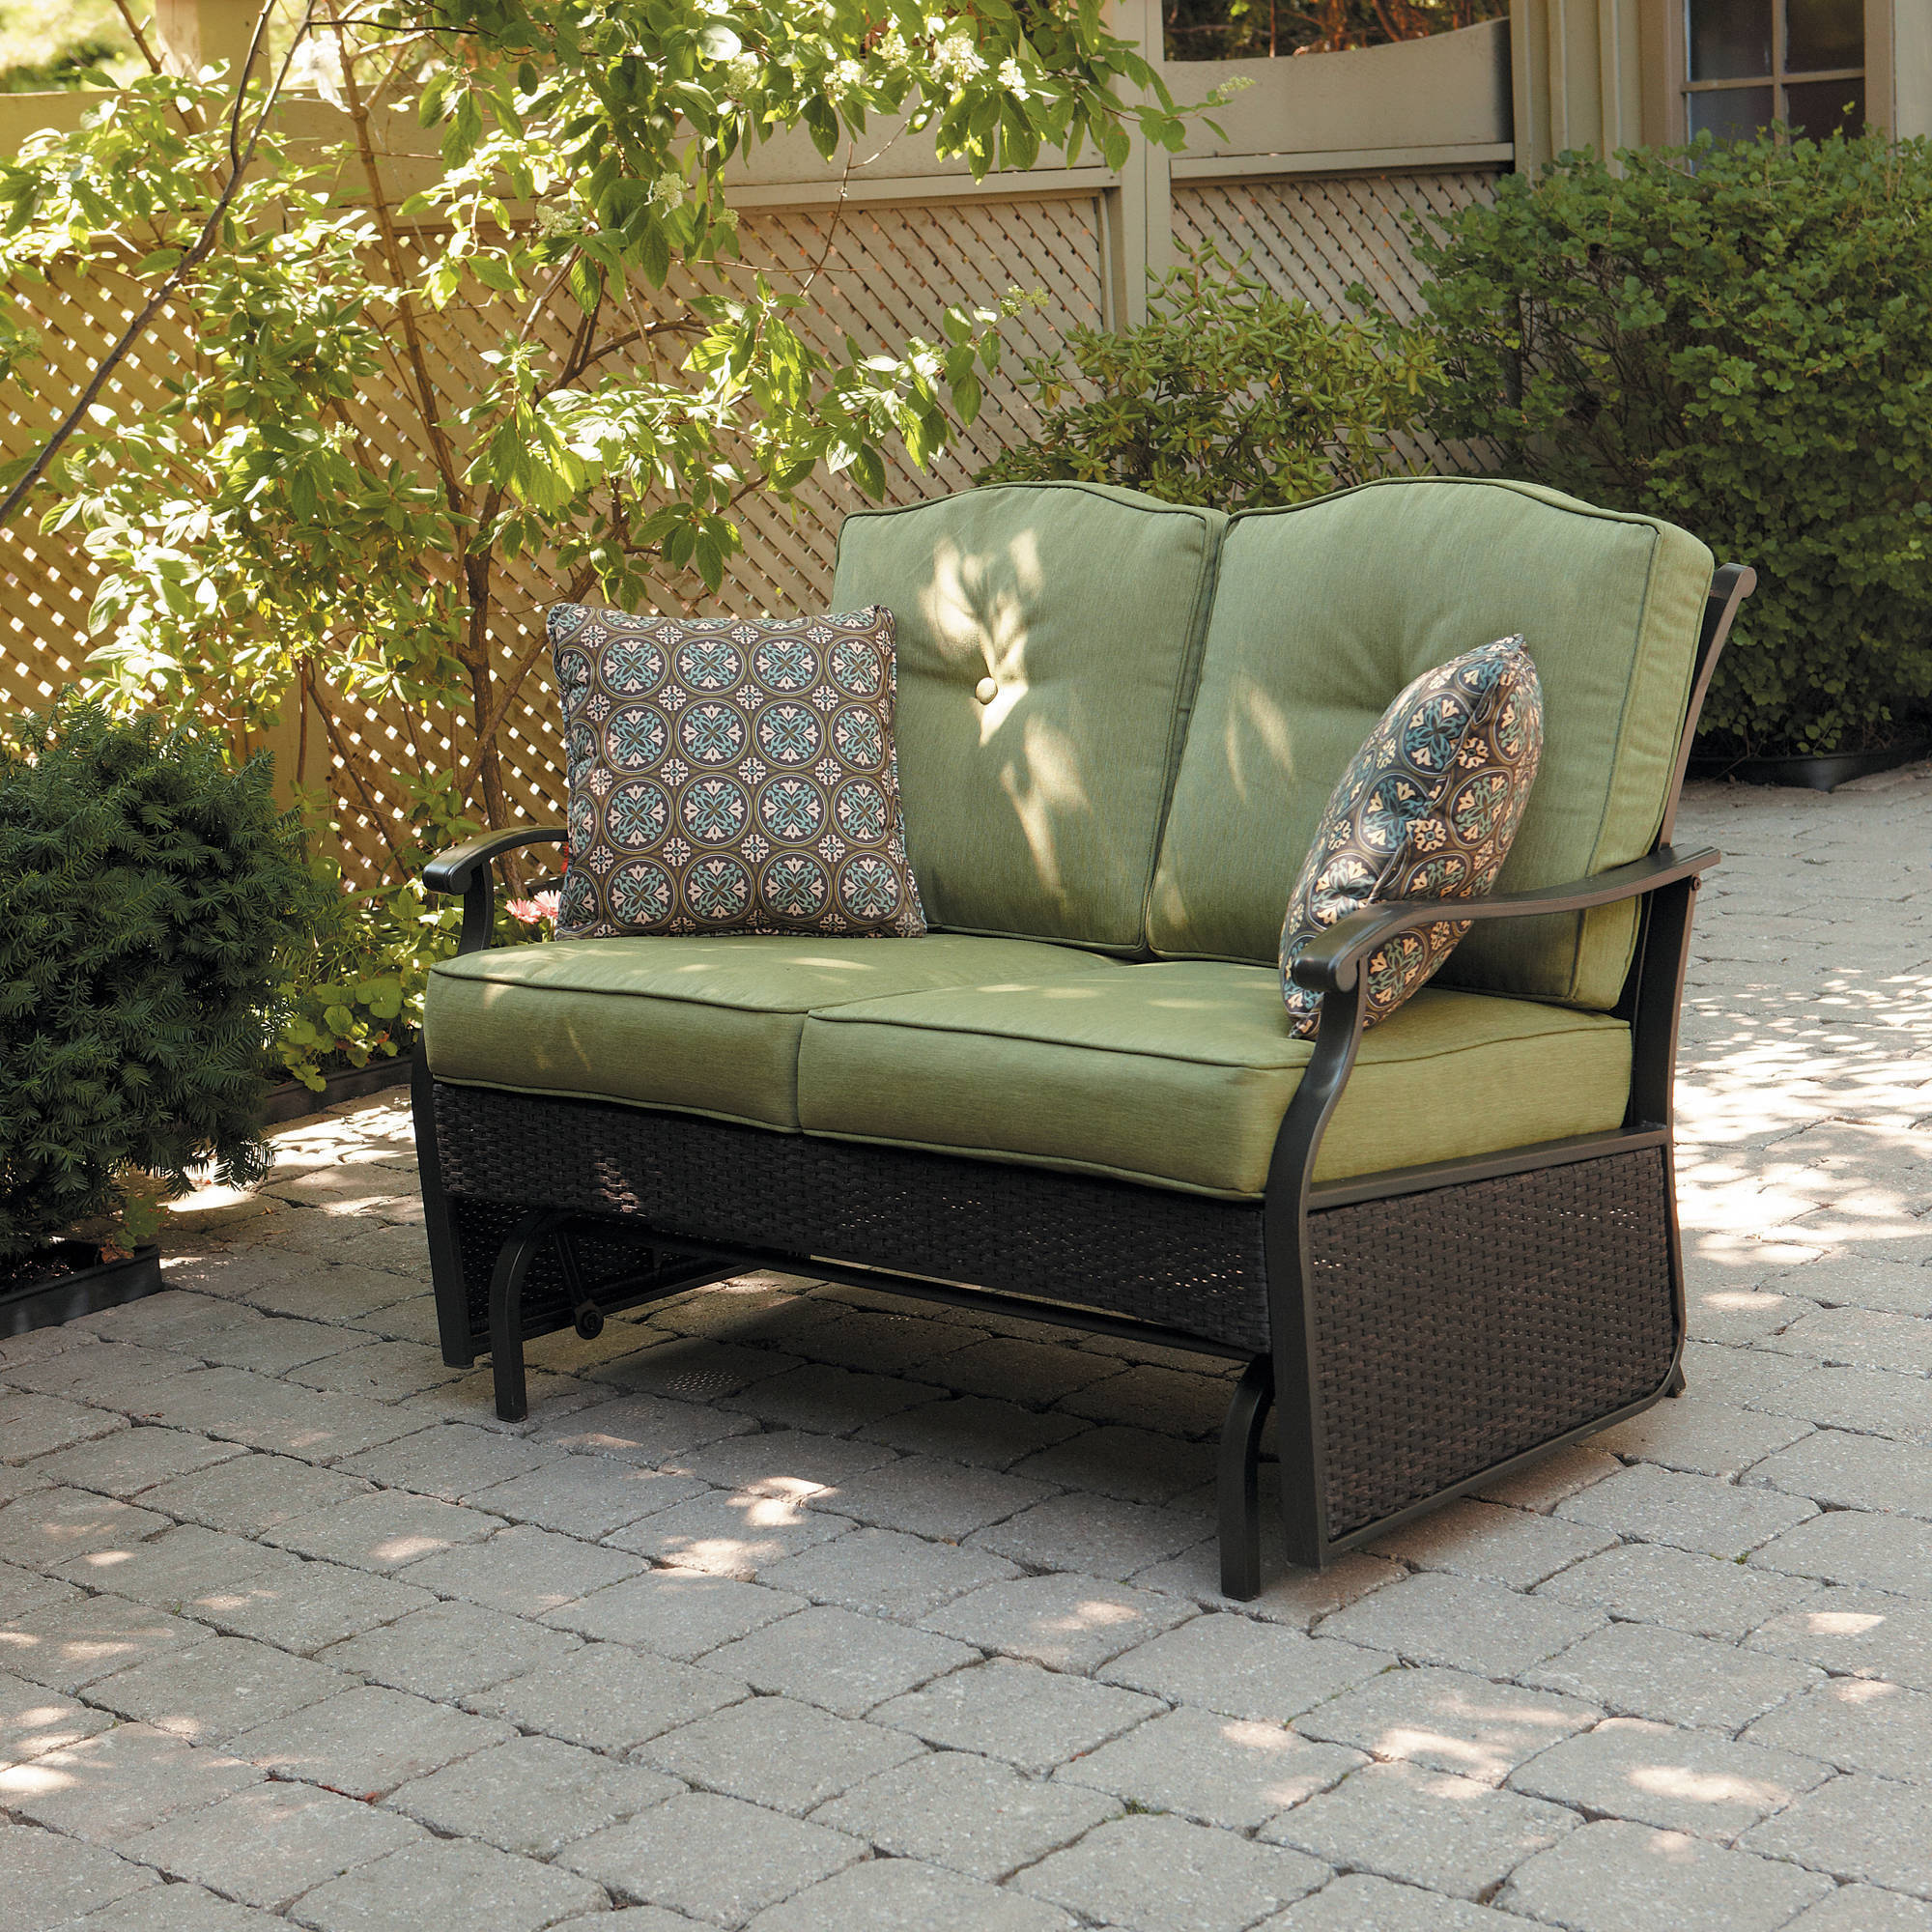 Better Homes And Gardens Providence Outdoor Glider Bench, Seats 2   Walmart .com